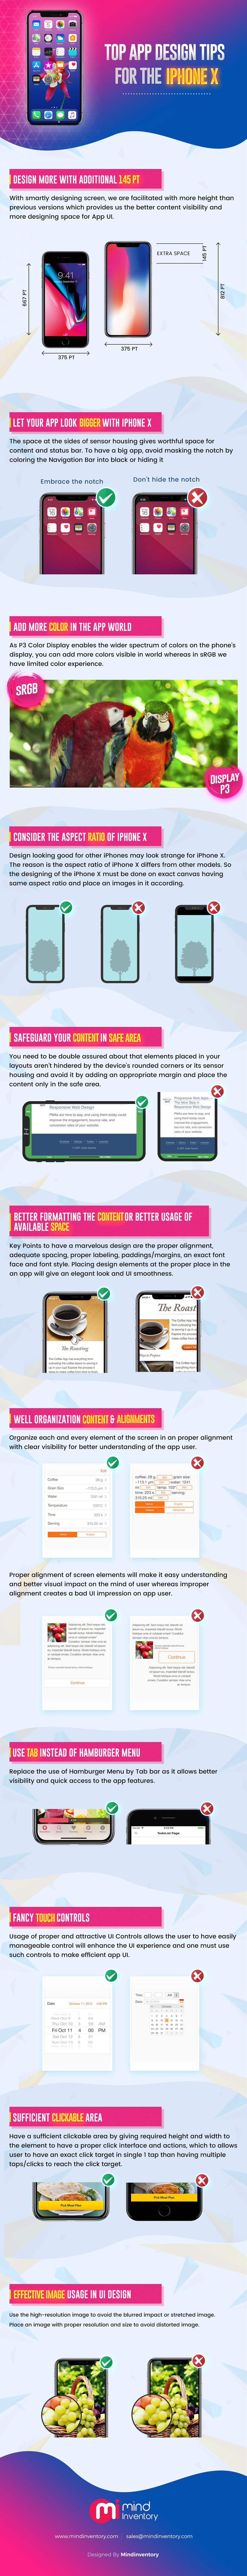 top app design tips for iPhone x